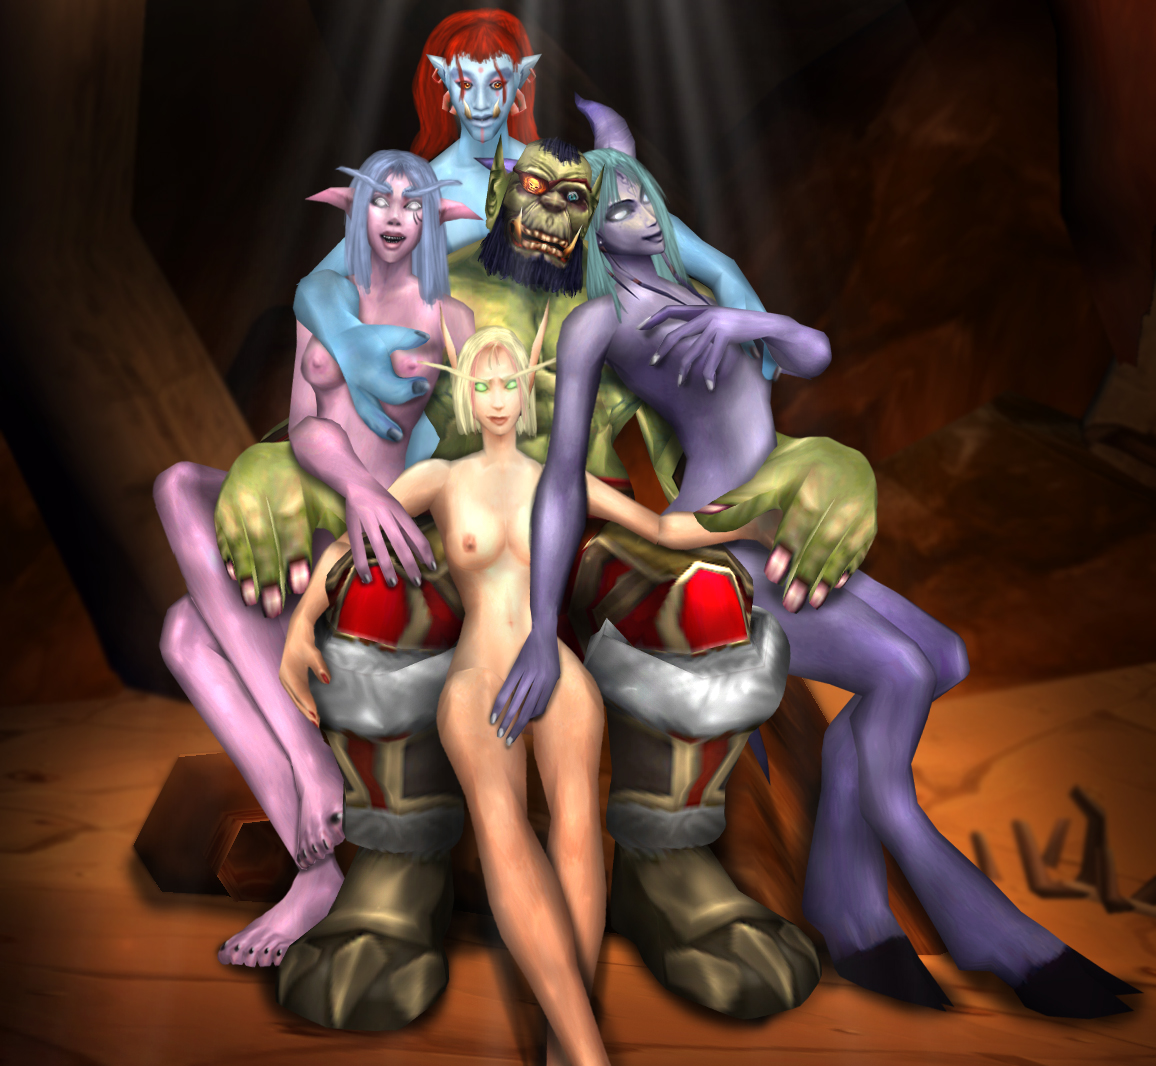 World of warcraft porn images cartoon pic